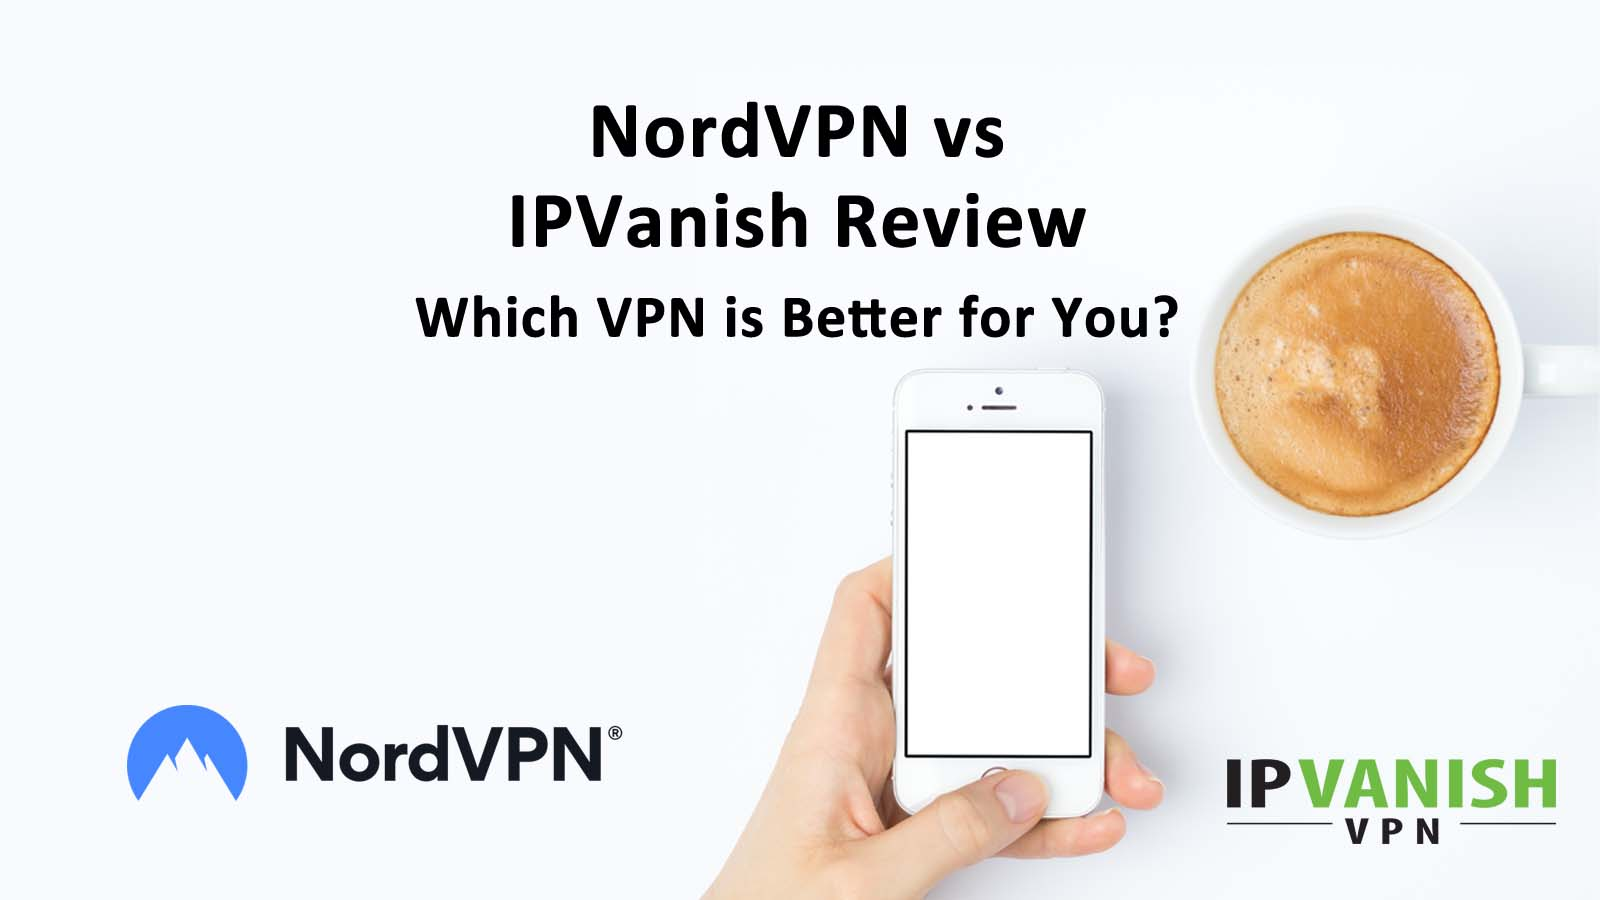 Ipvanish Apk Cracked For Android